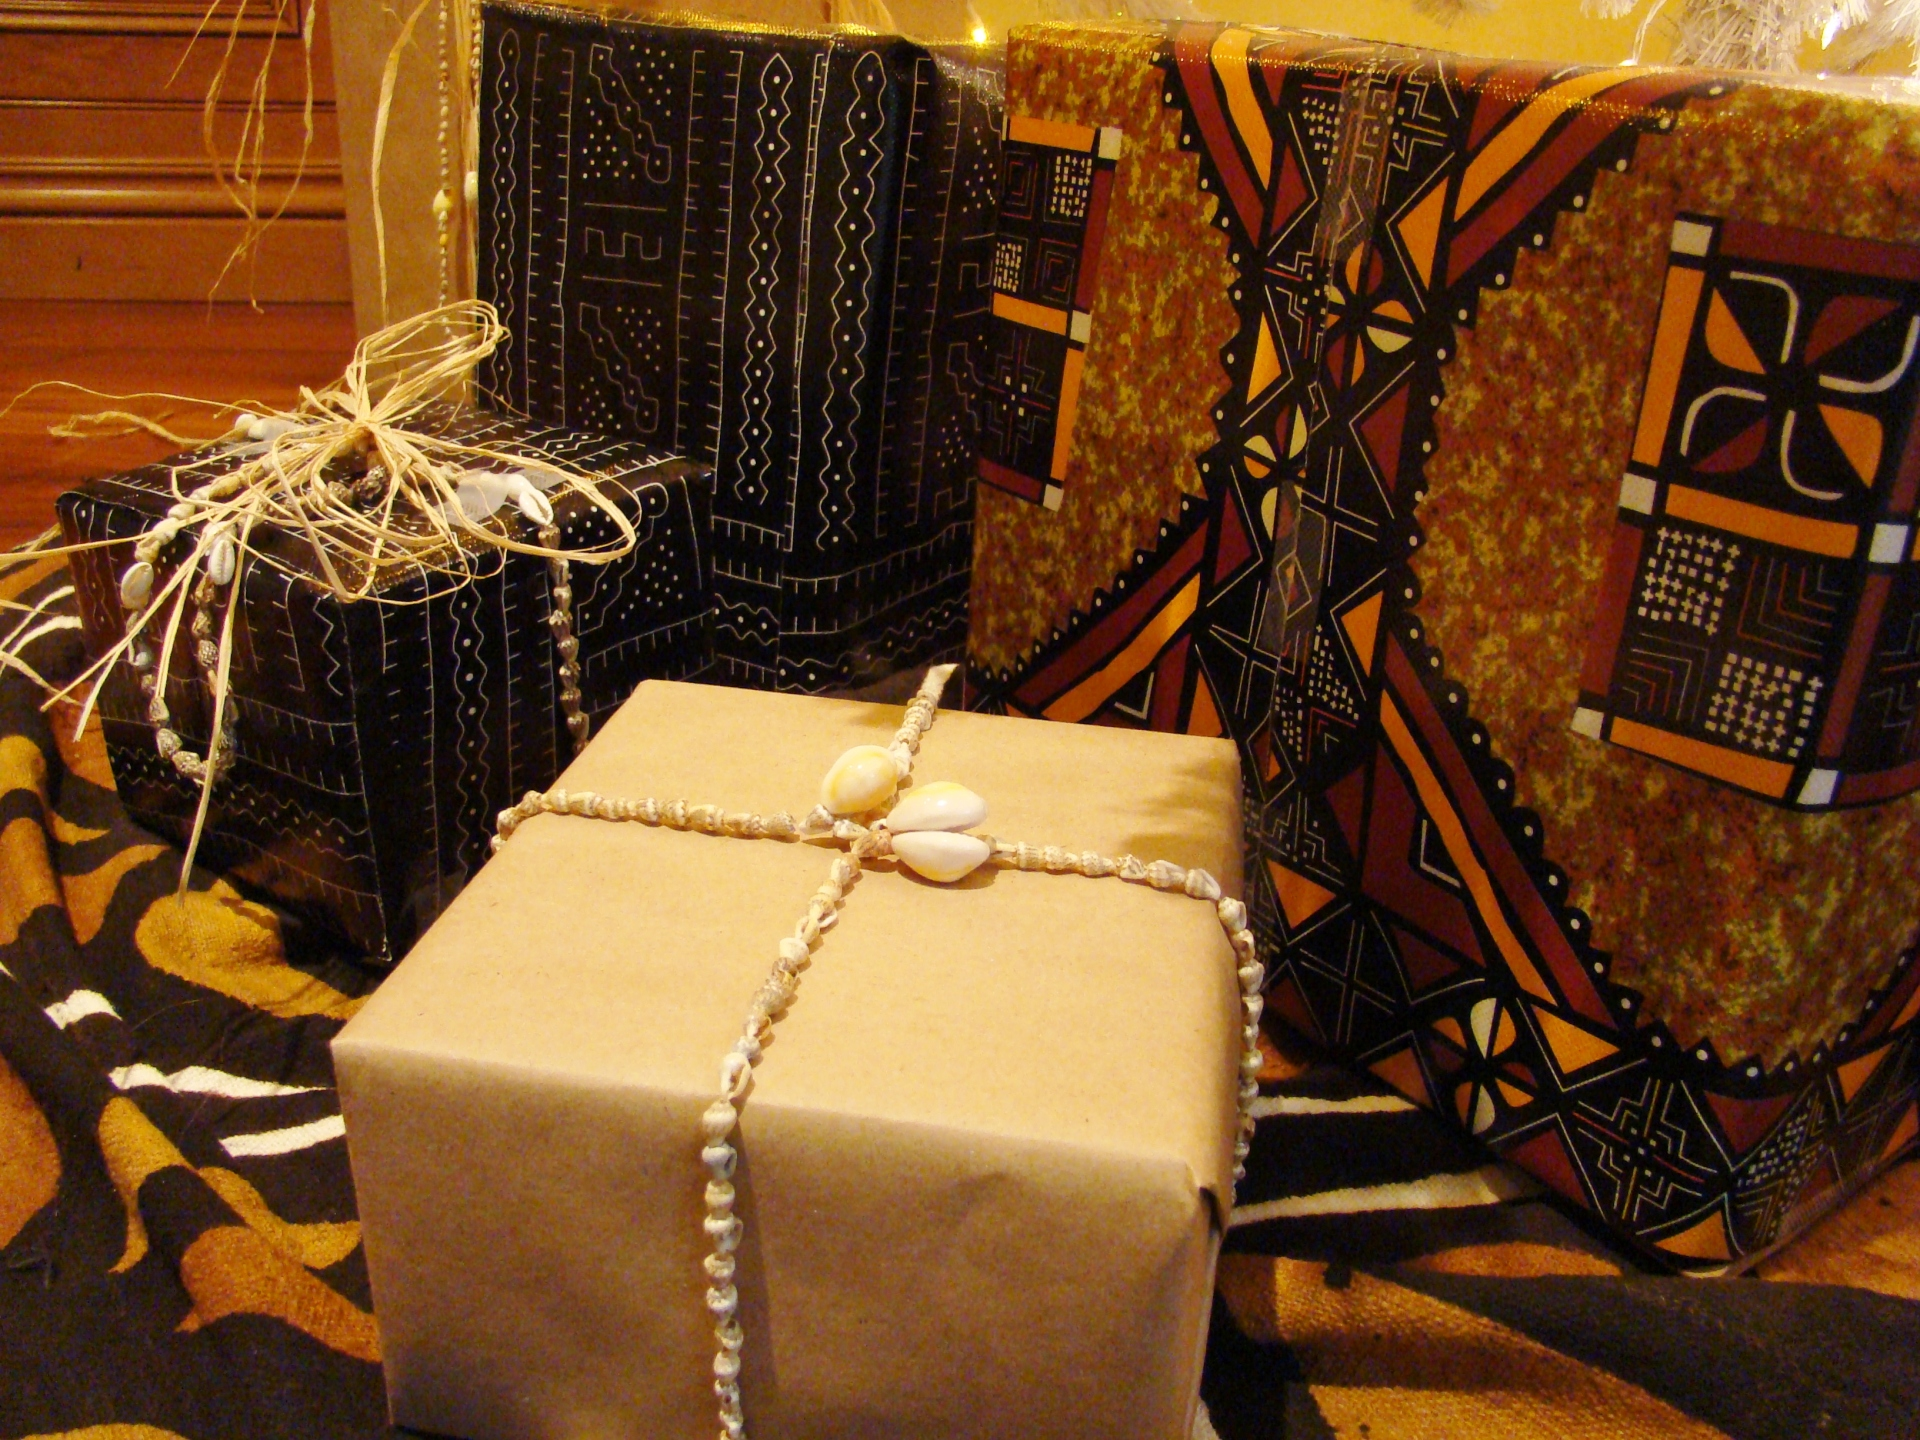 Fiorito Interior Design, interior design, Homes For The Holidays, African, holiday tree, African design wrapping paper, cowrie shells, mud cloth, bògòlanfini